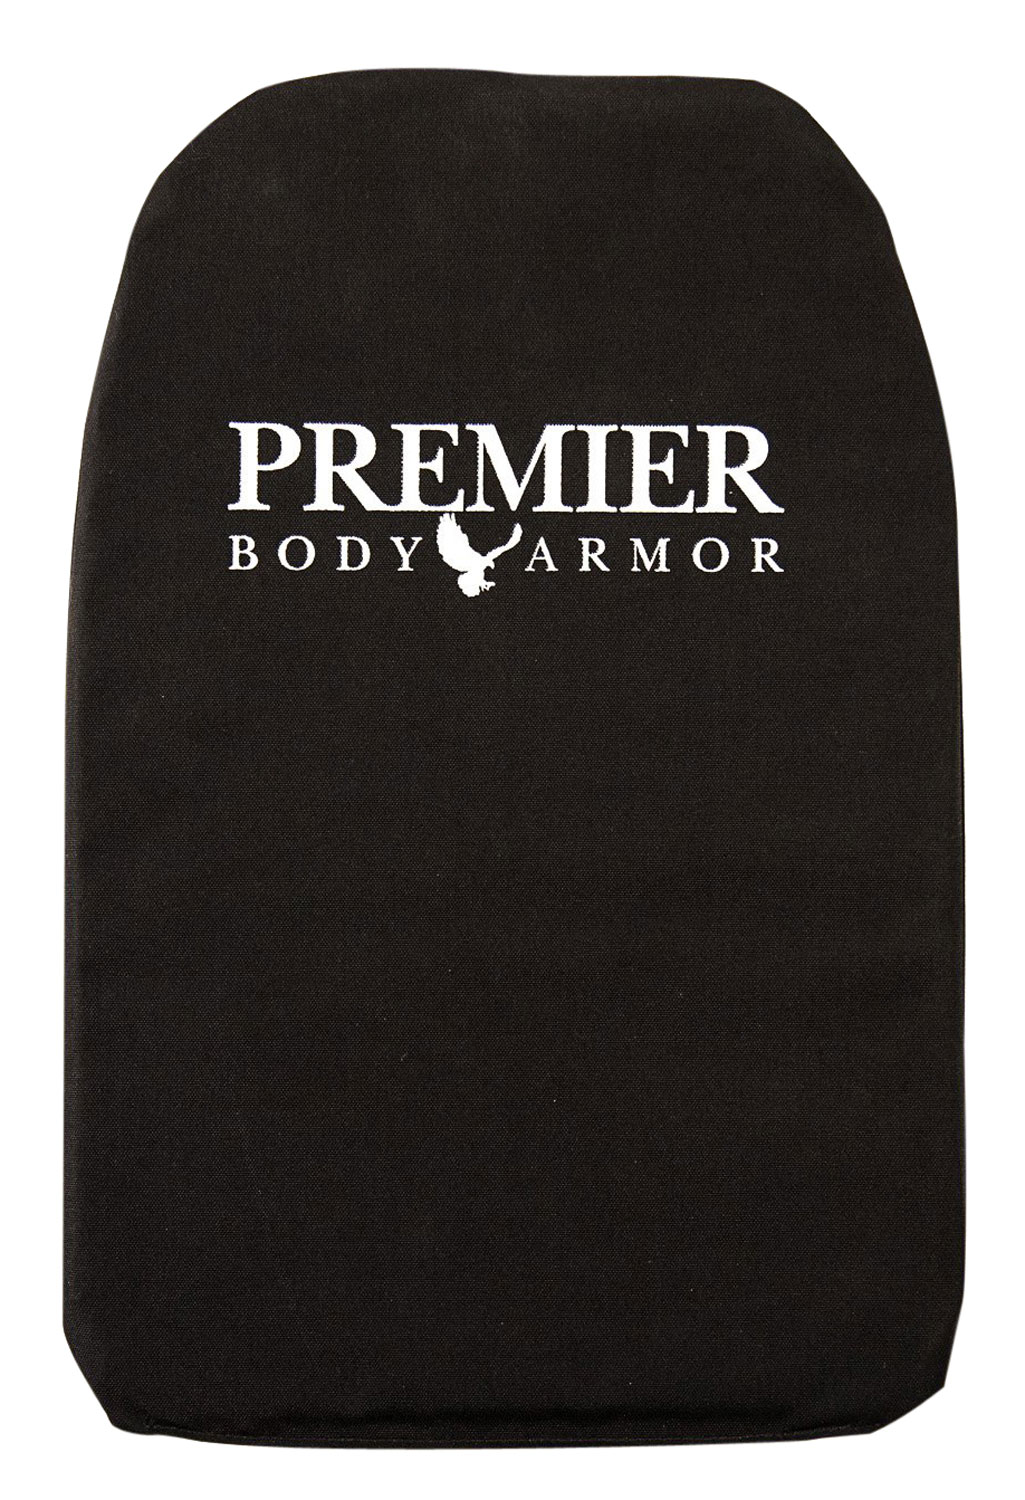 PREMIER BODY ARMOR LLC BPP9027 Backpack Panel Vertx EDC Transit Body Armor Level IIIA Kevlar/500D Cordura Black